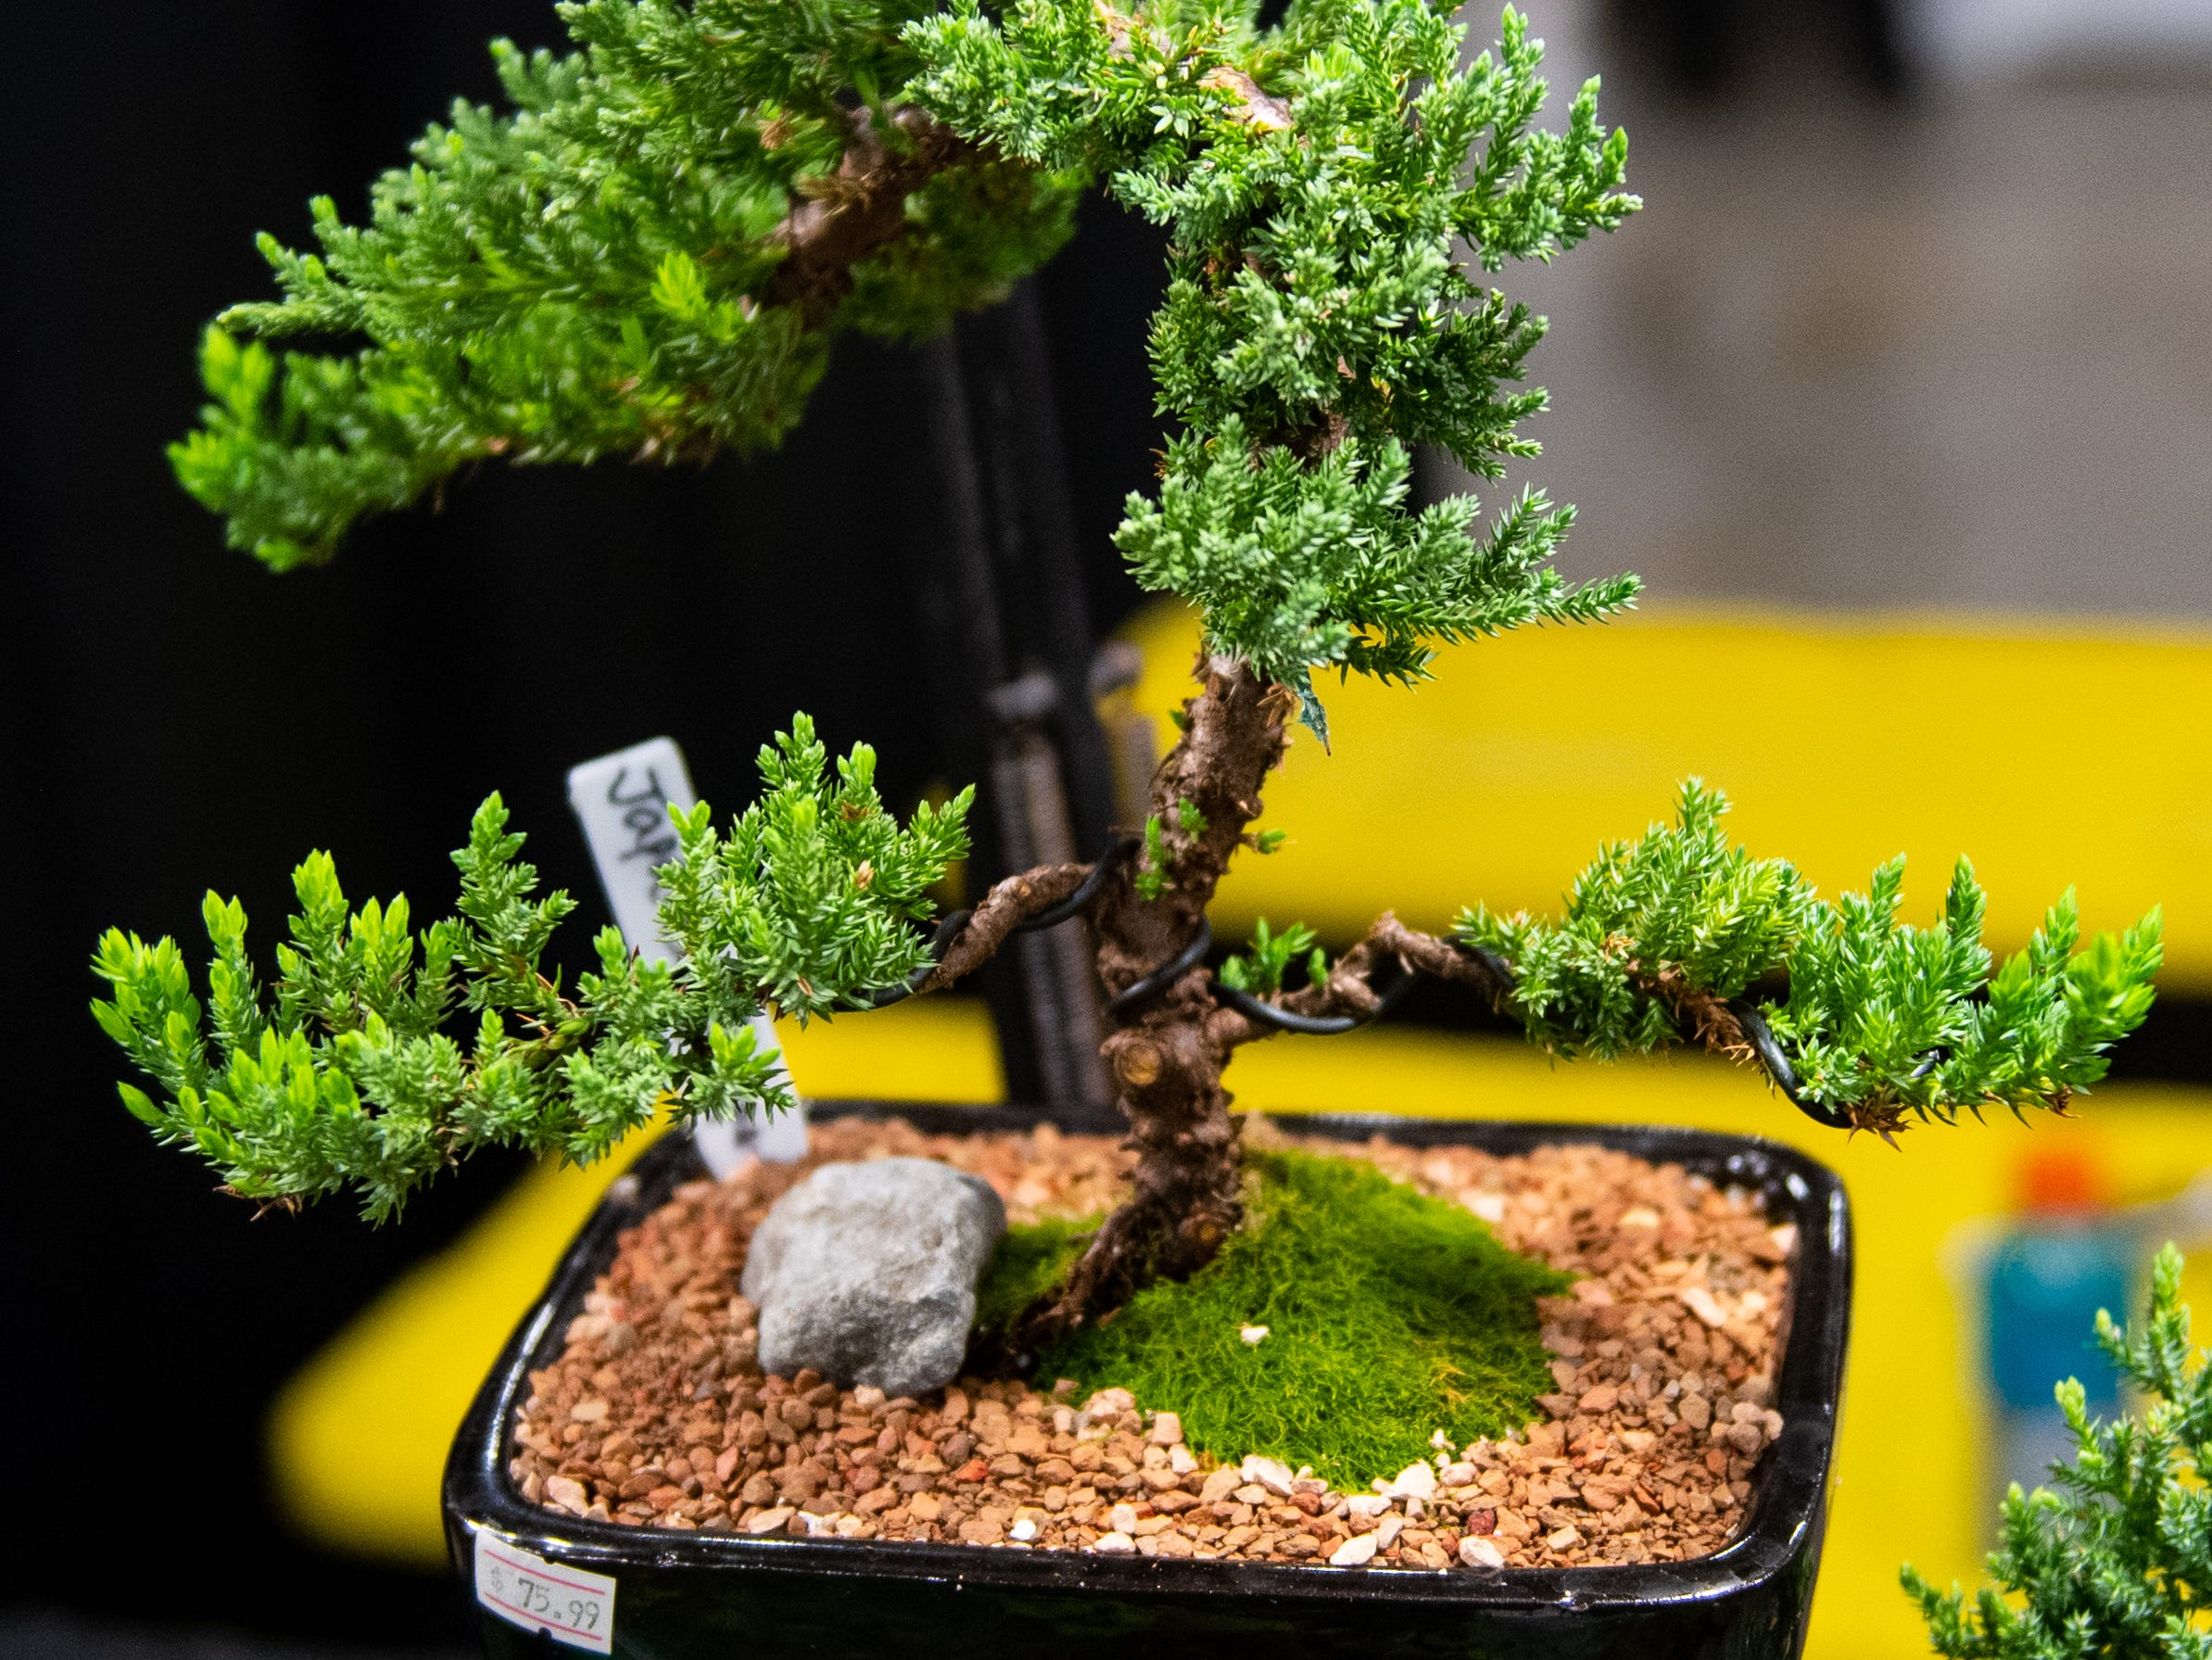 Bonzai trees of all shapes and sizes are on sale at the 2019 Home & Garden Show, February 8, 2019.